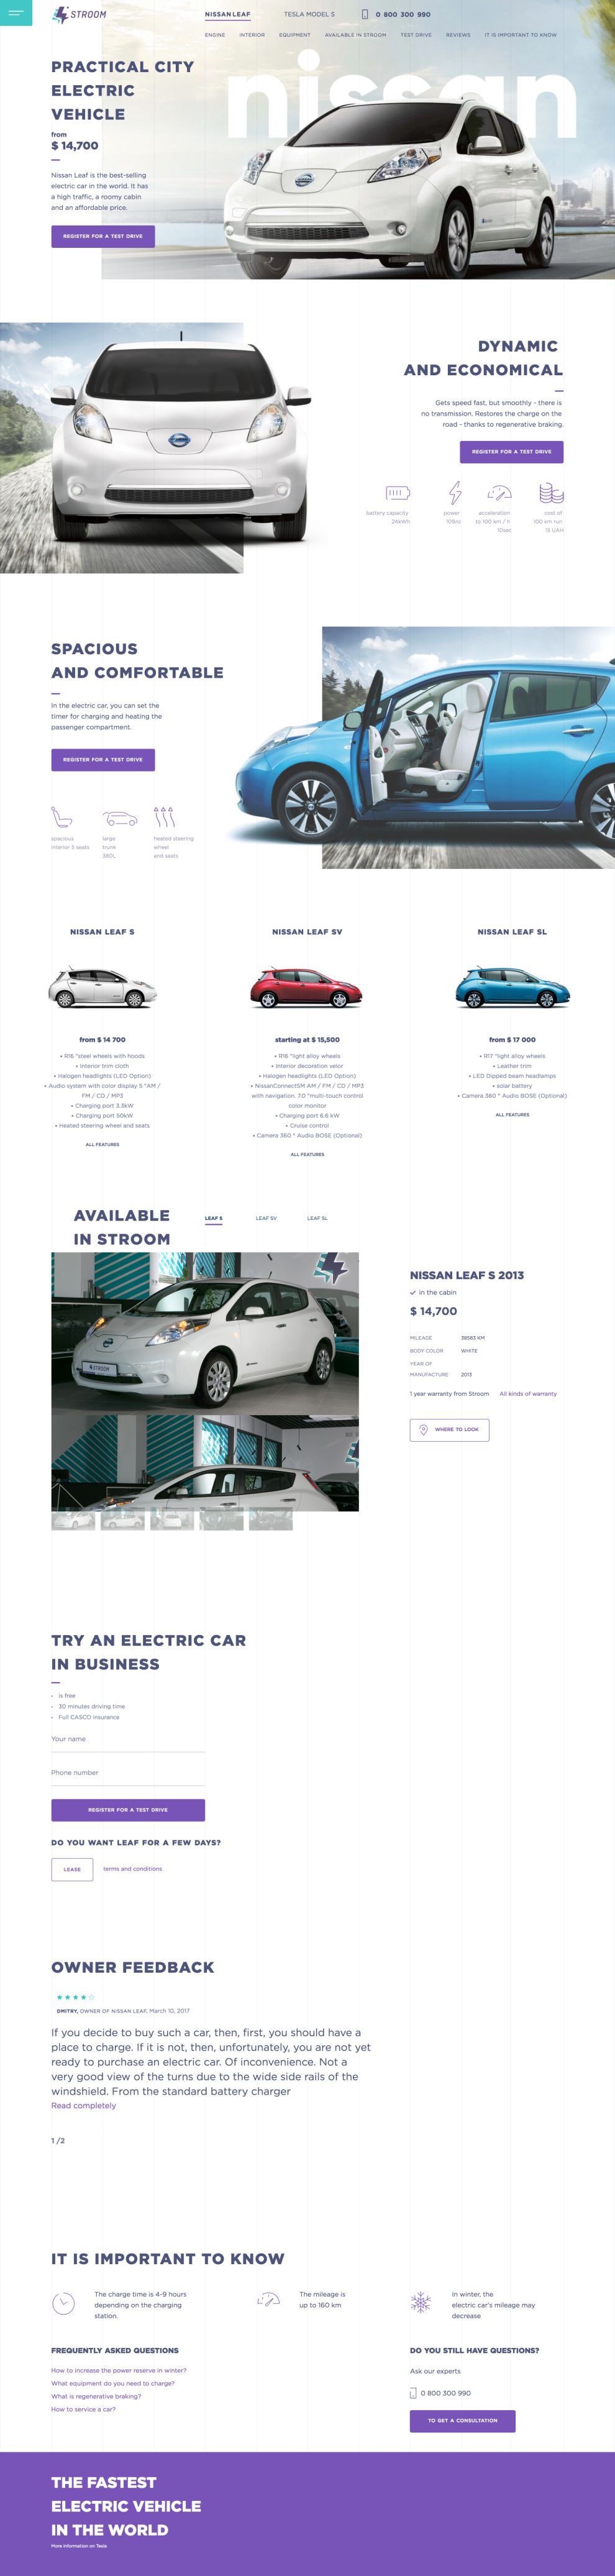 Stroom Beautiful Product Page